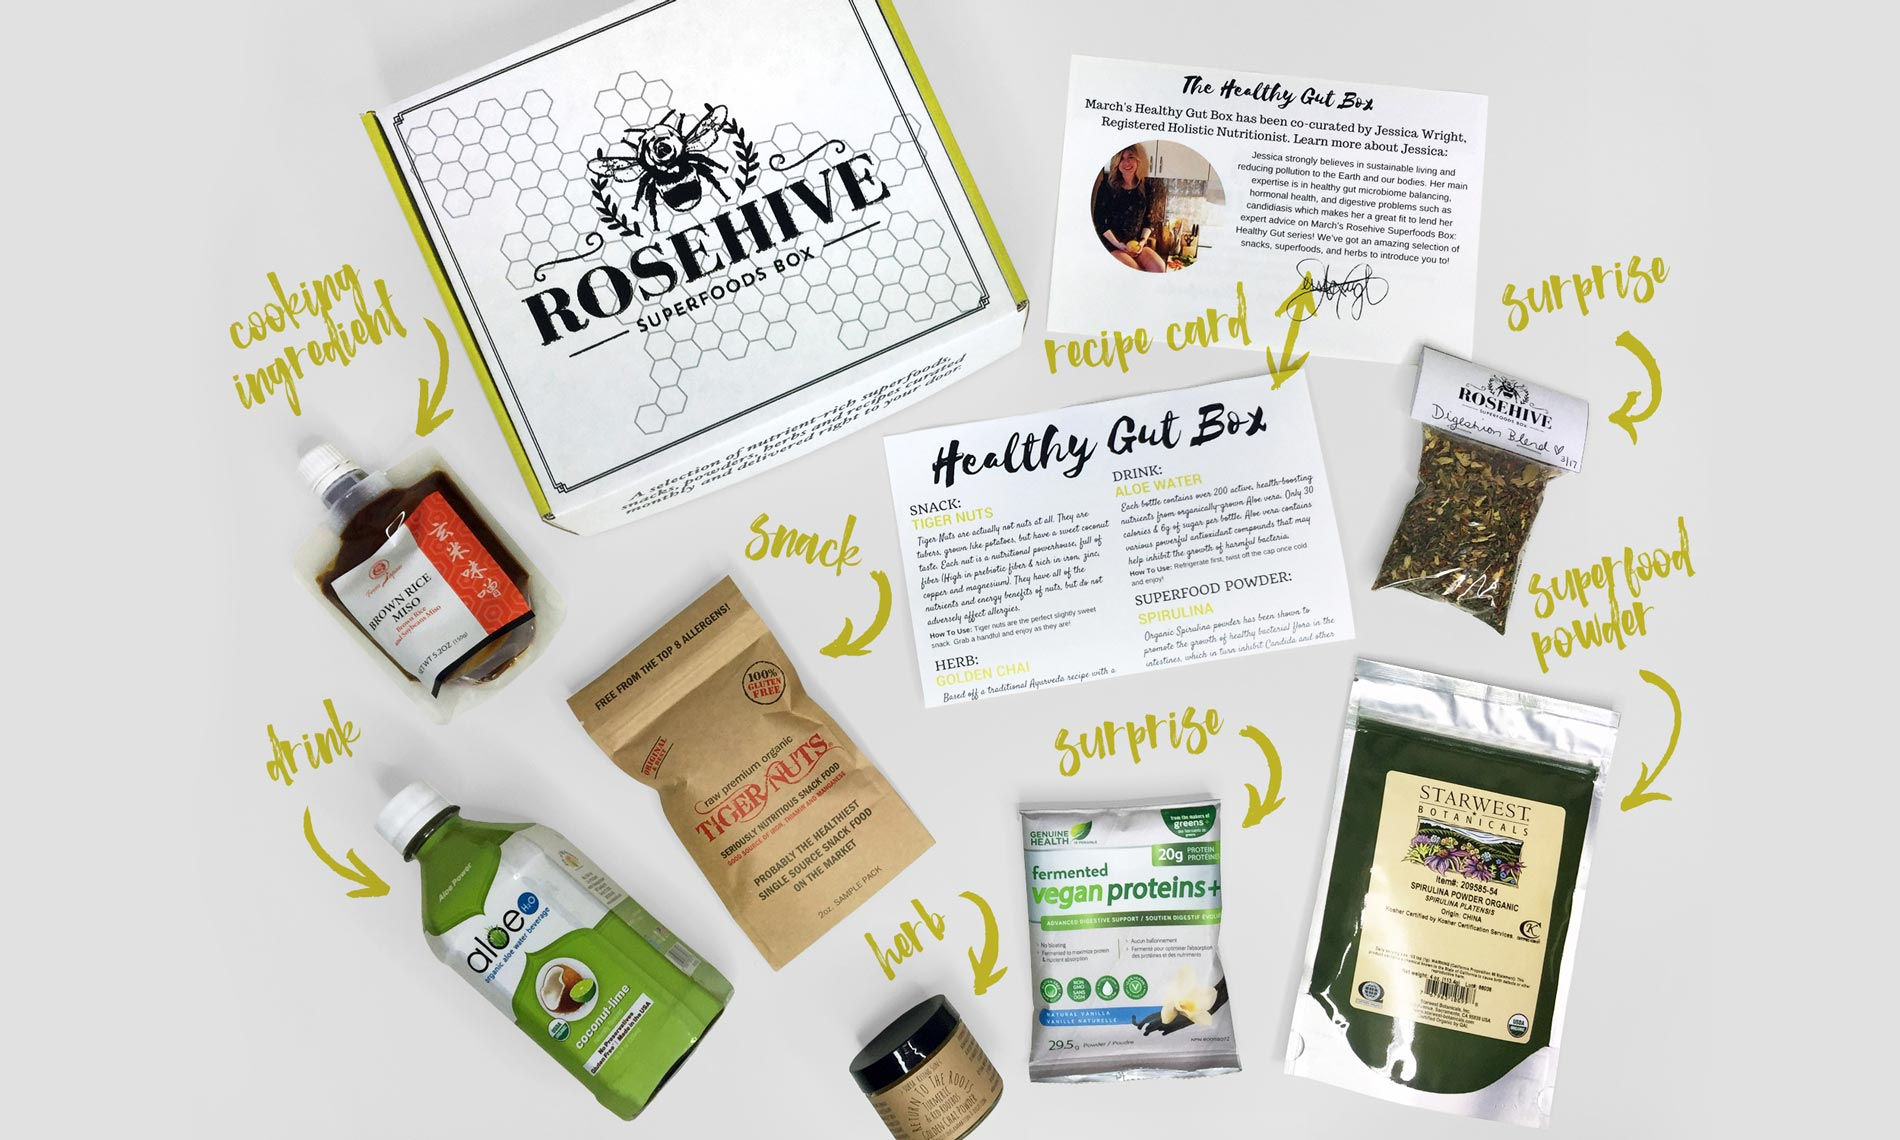 Rosehive Superfood Subscription Box